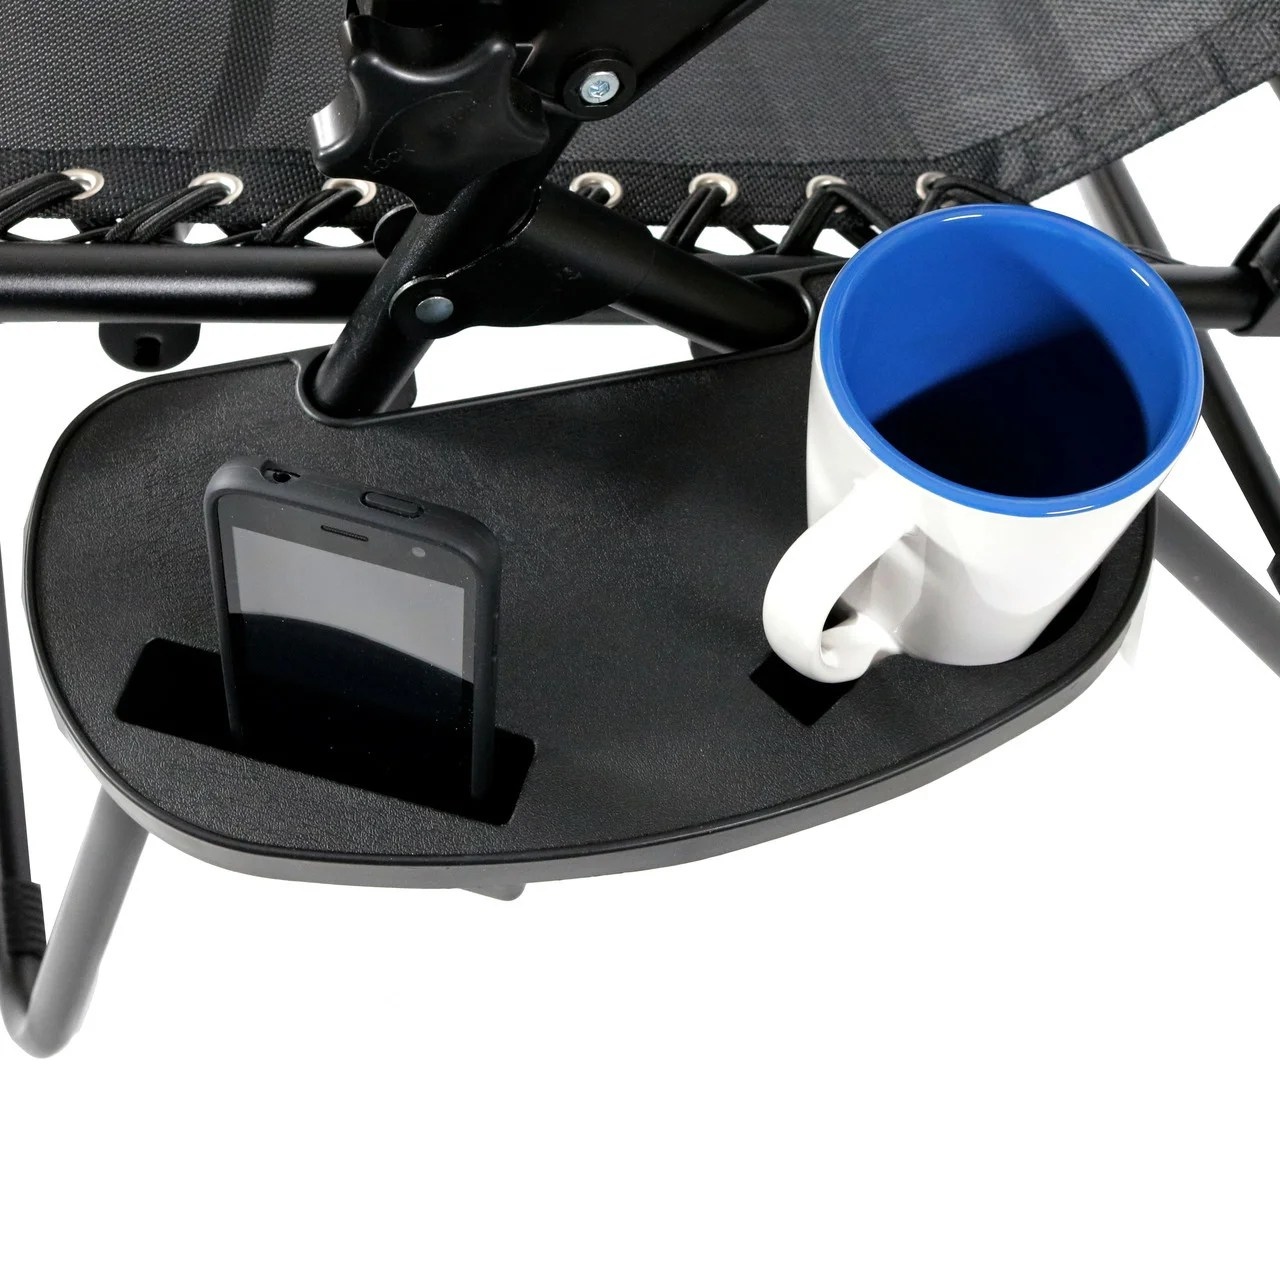 cup holder tray for zero gravity chair hanging kanes sunnydaze decor universal oval